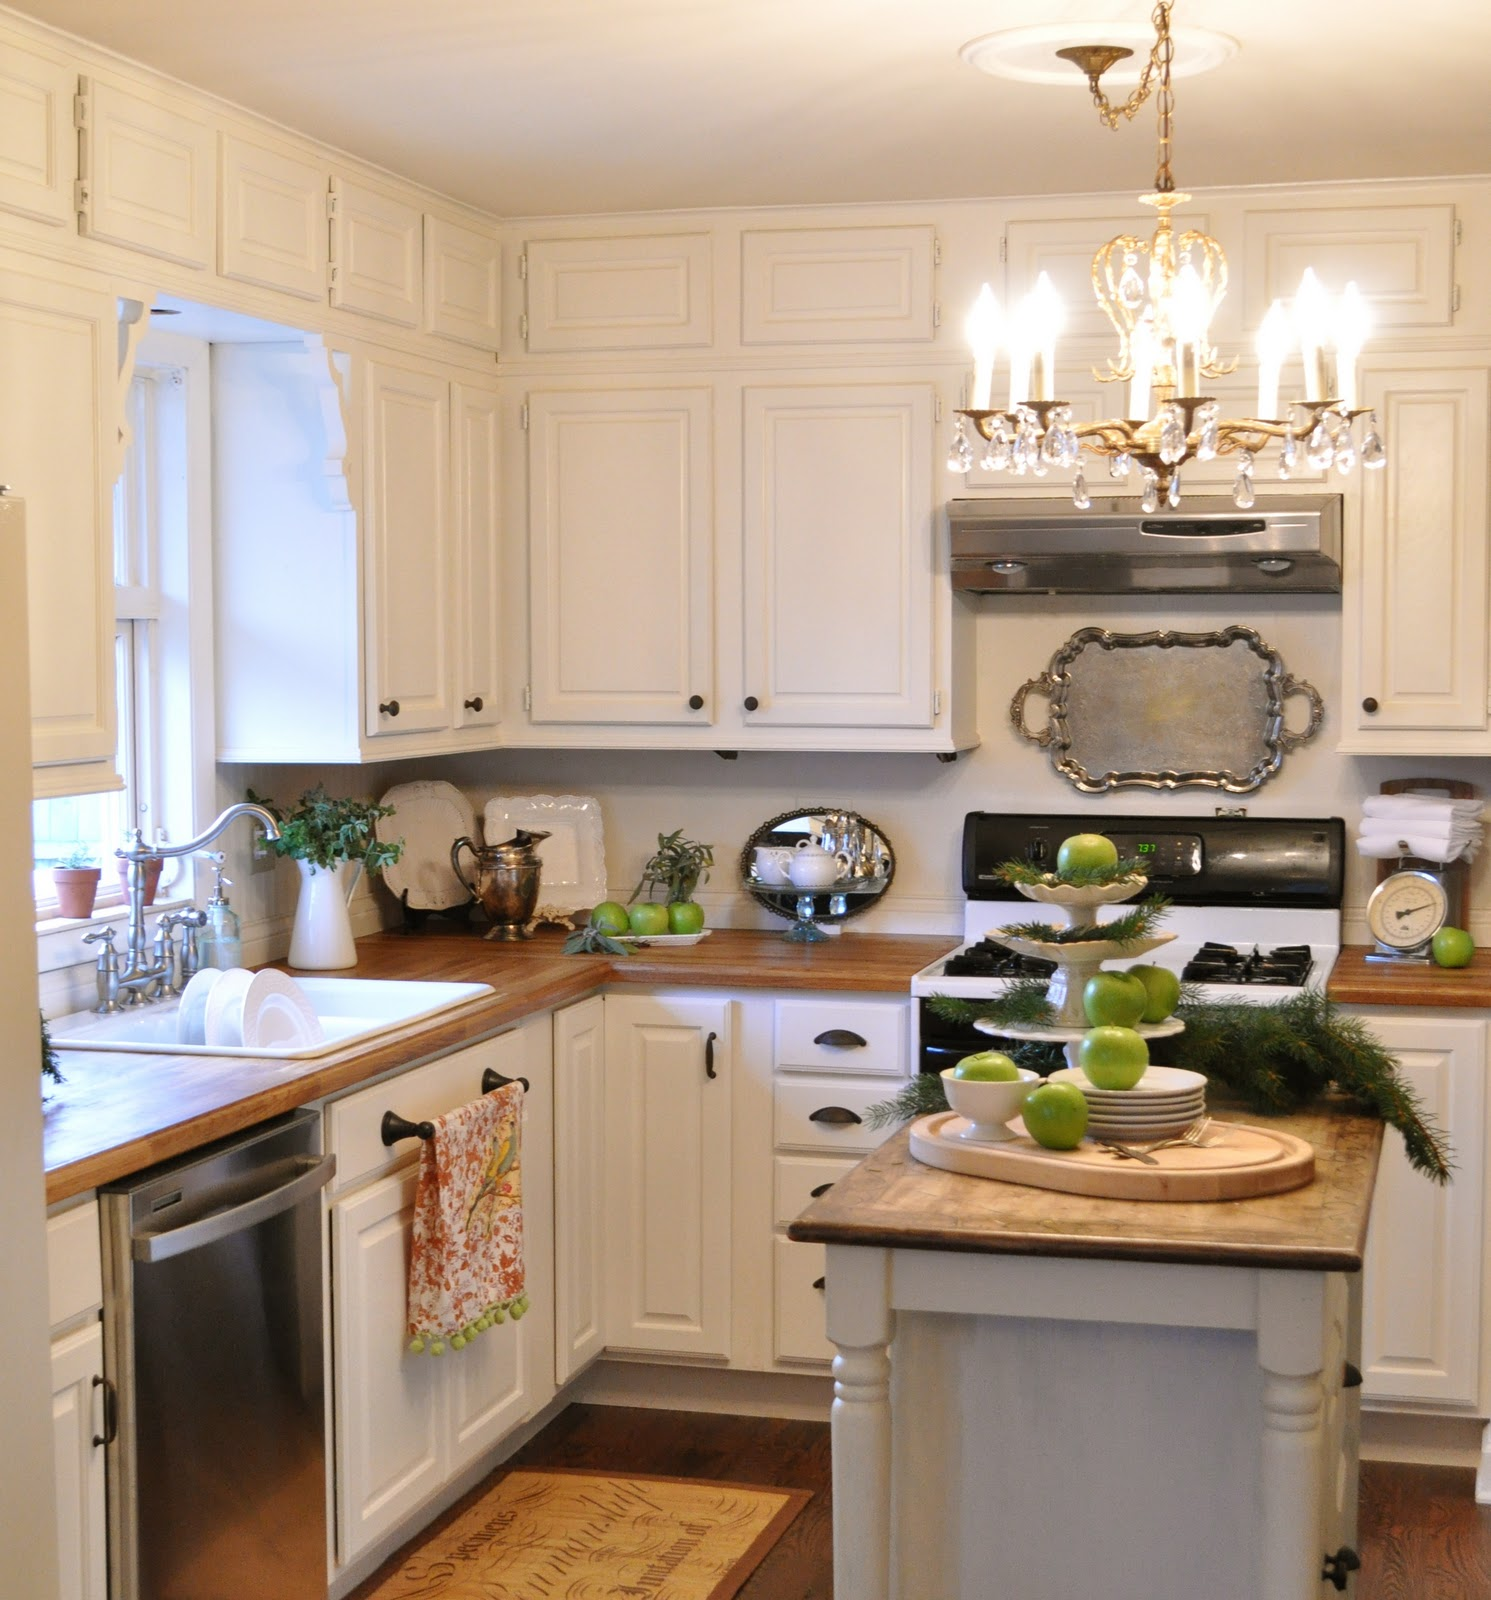 my complete kitchen remodel story for about $12,000. - jennifer